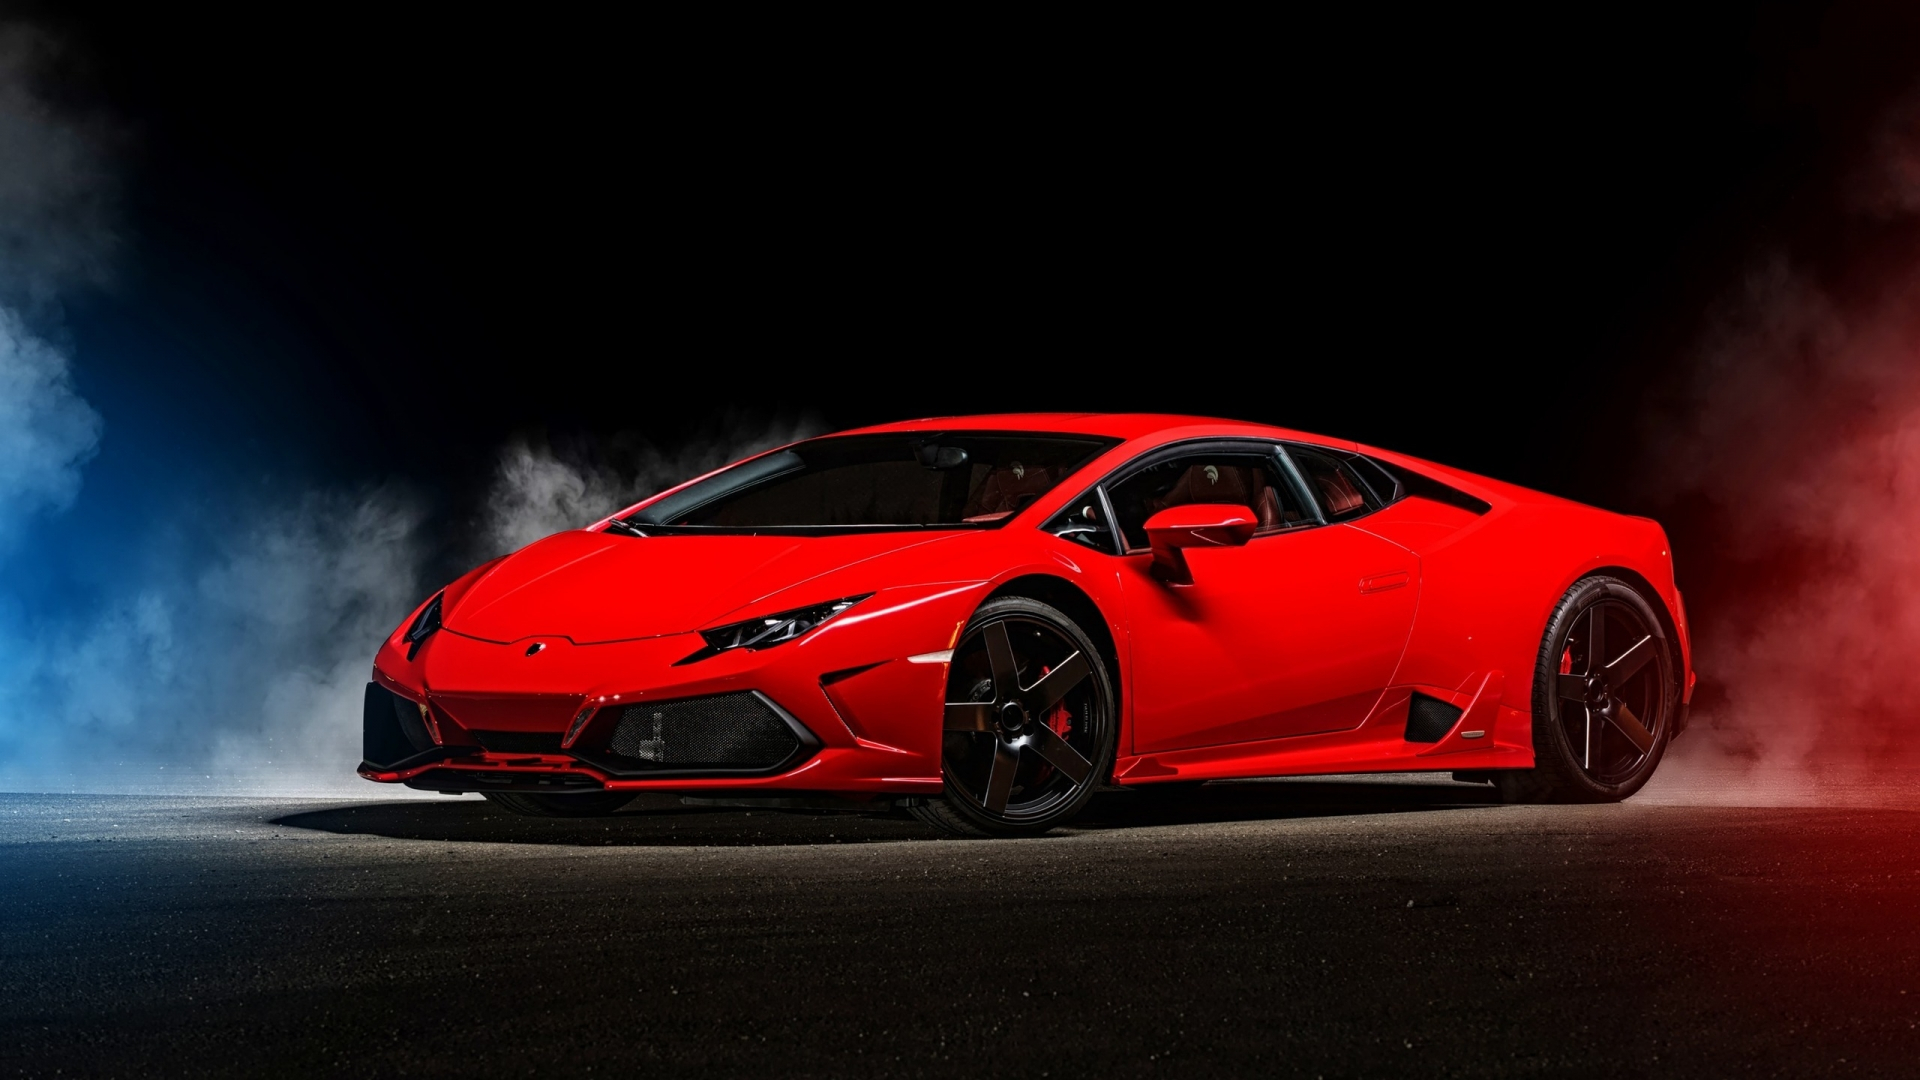 2015 Red Lamborghini Huracan for 1920 x 1080 HDTV 1080p resolution